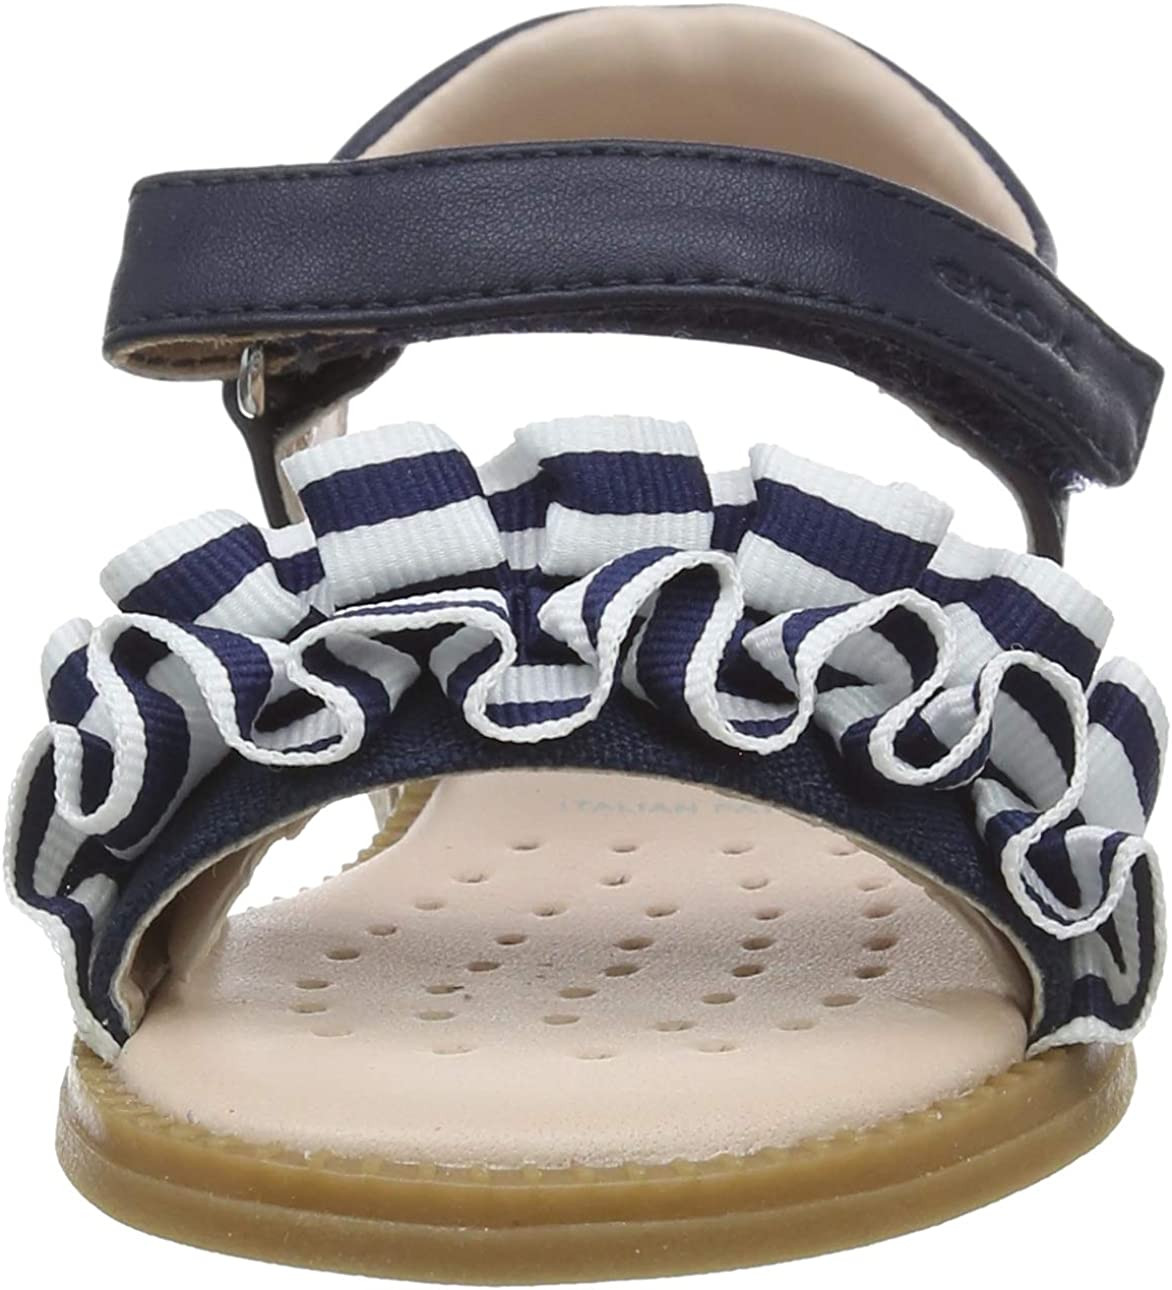 Bout Ouvert Fille Geox J Sandal Karly Girl G